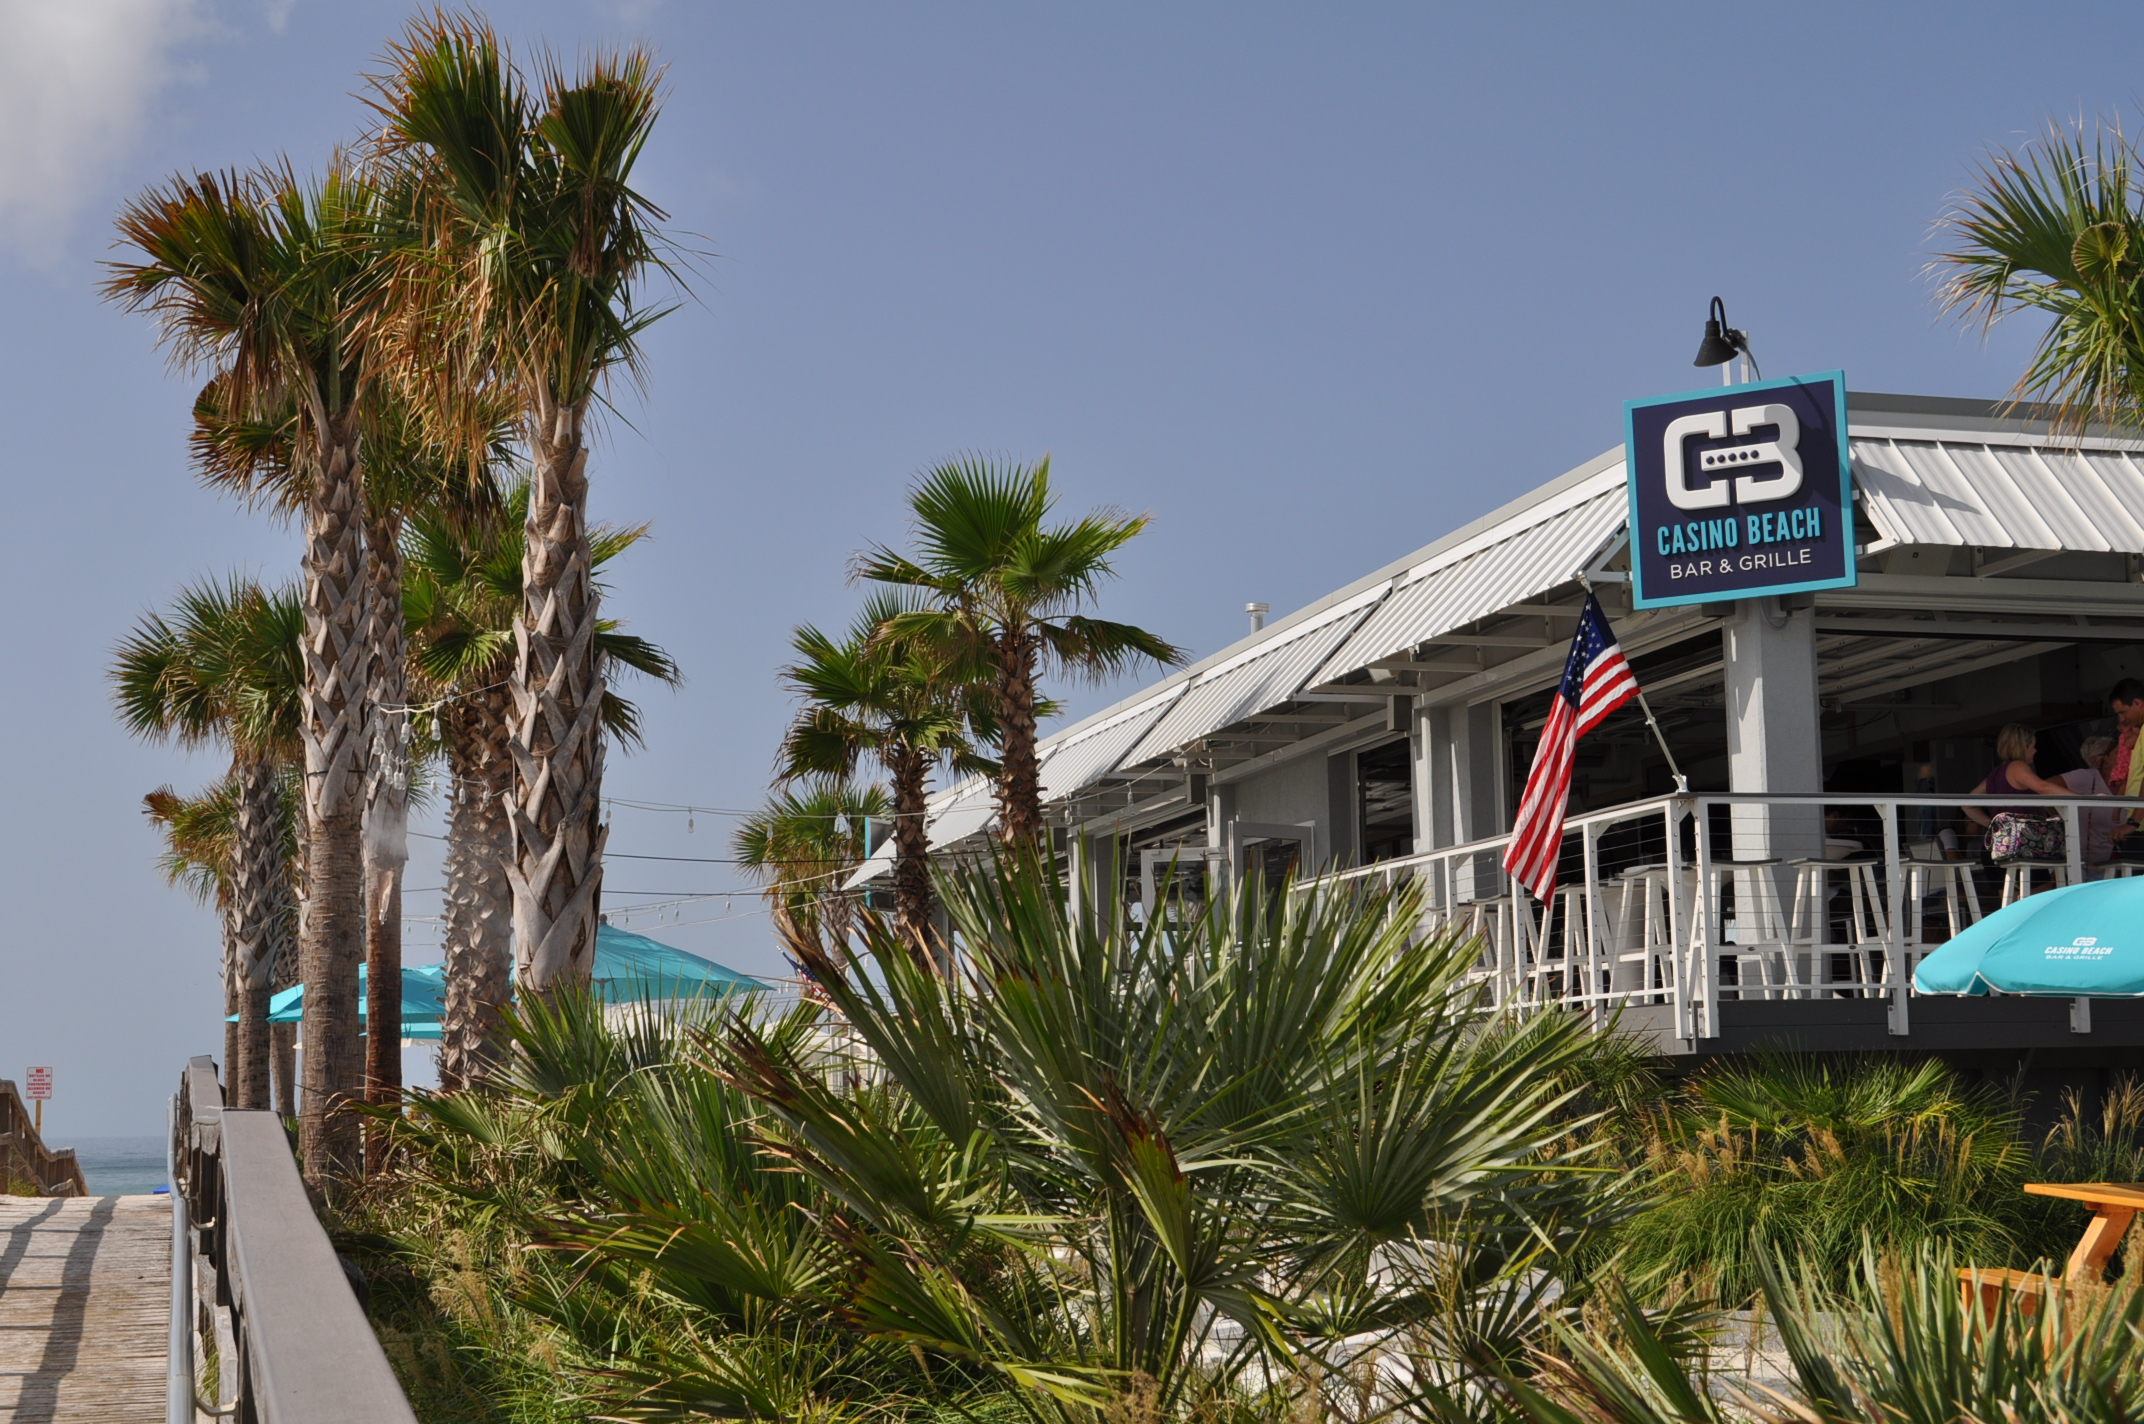 Casino Beach Bar Is The Place To Be On Pensacola Beach